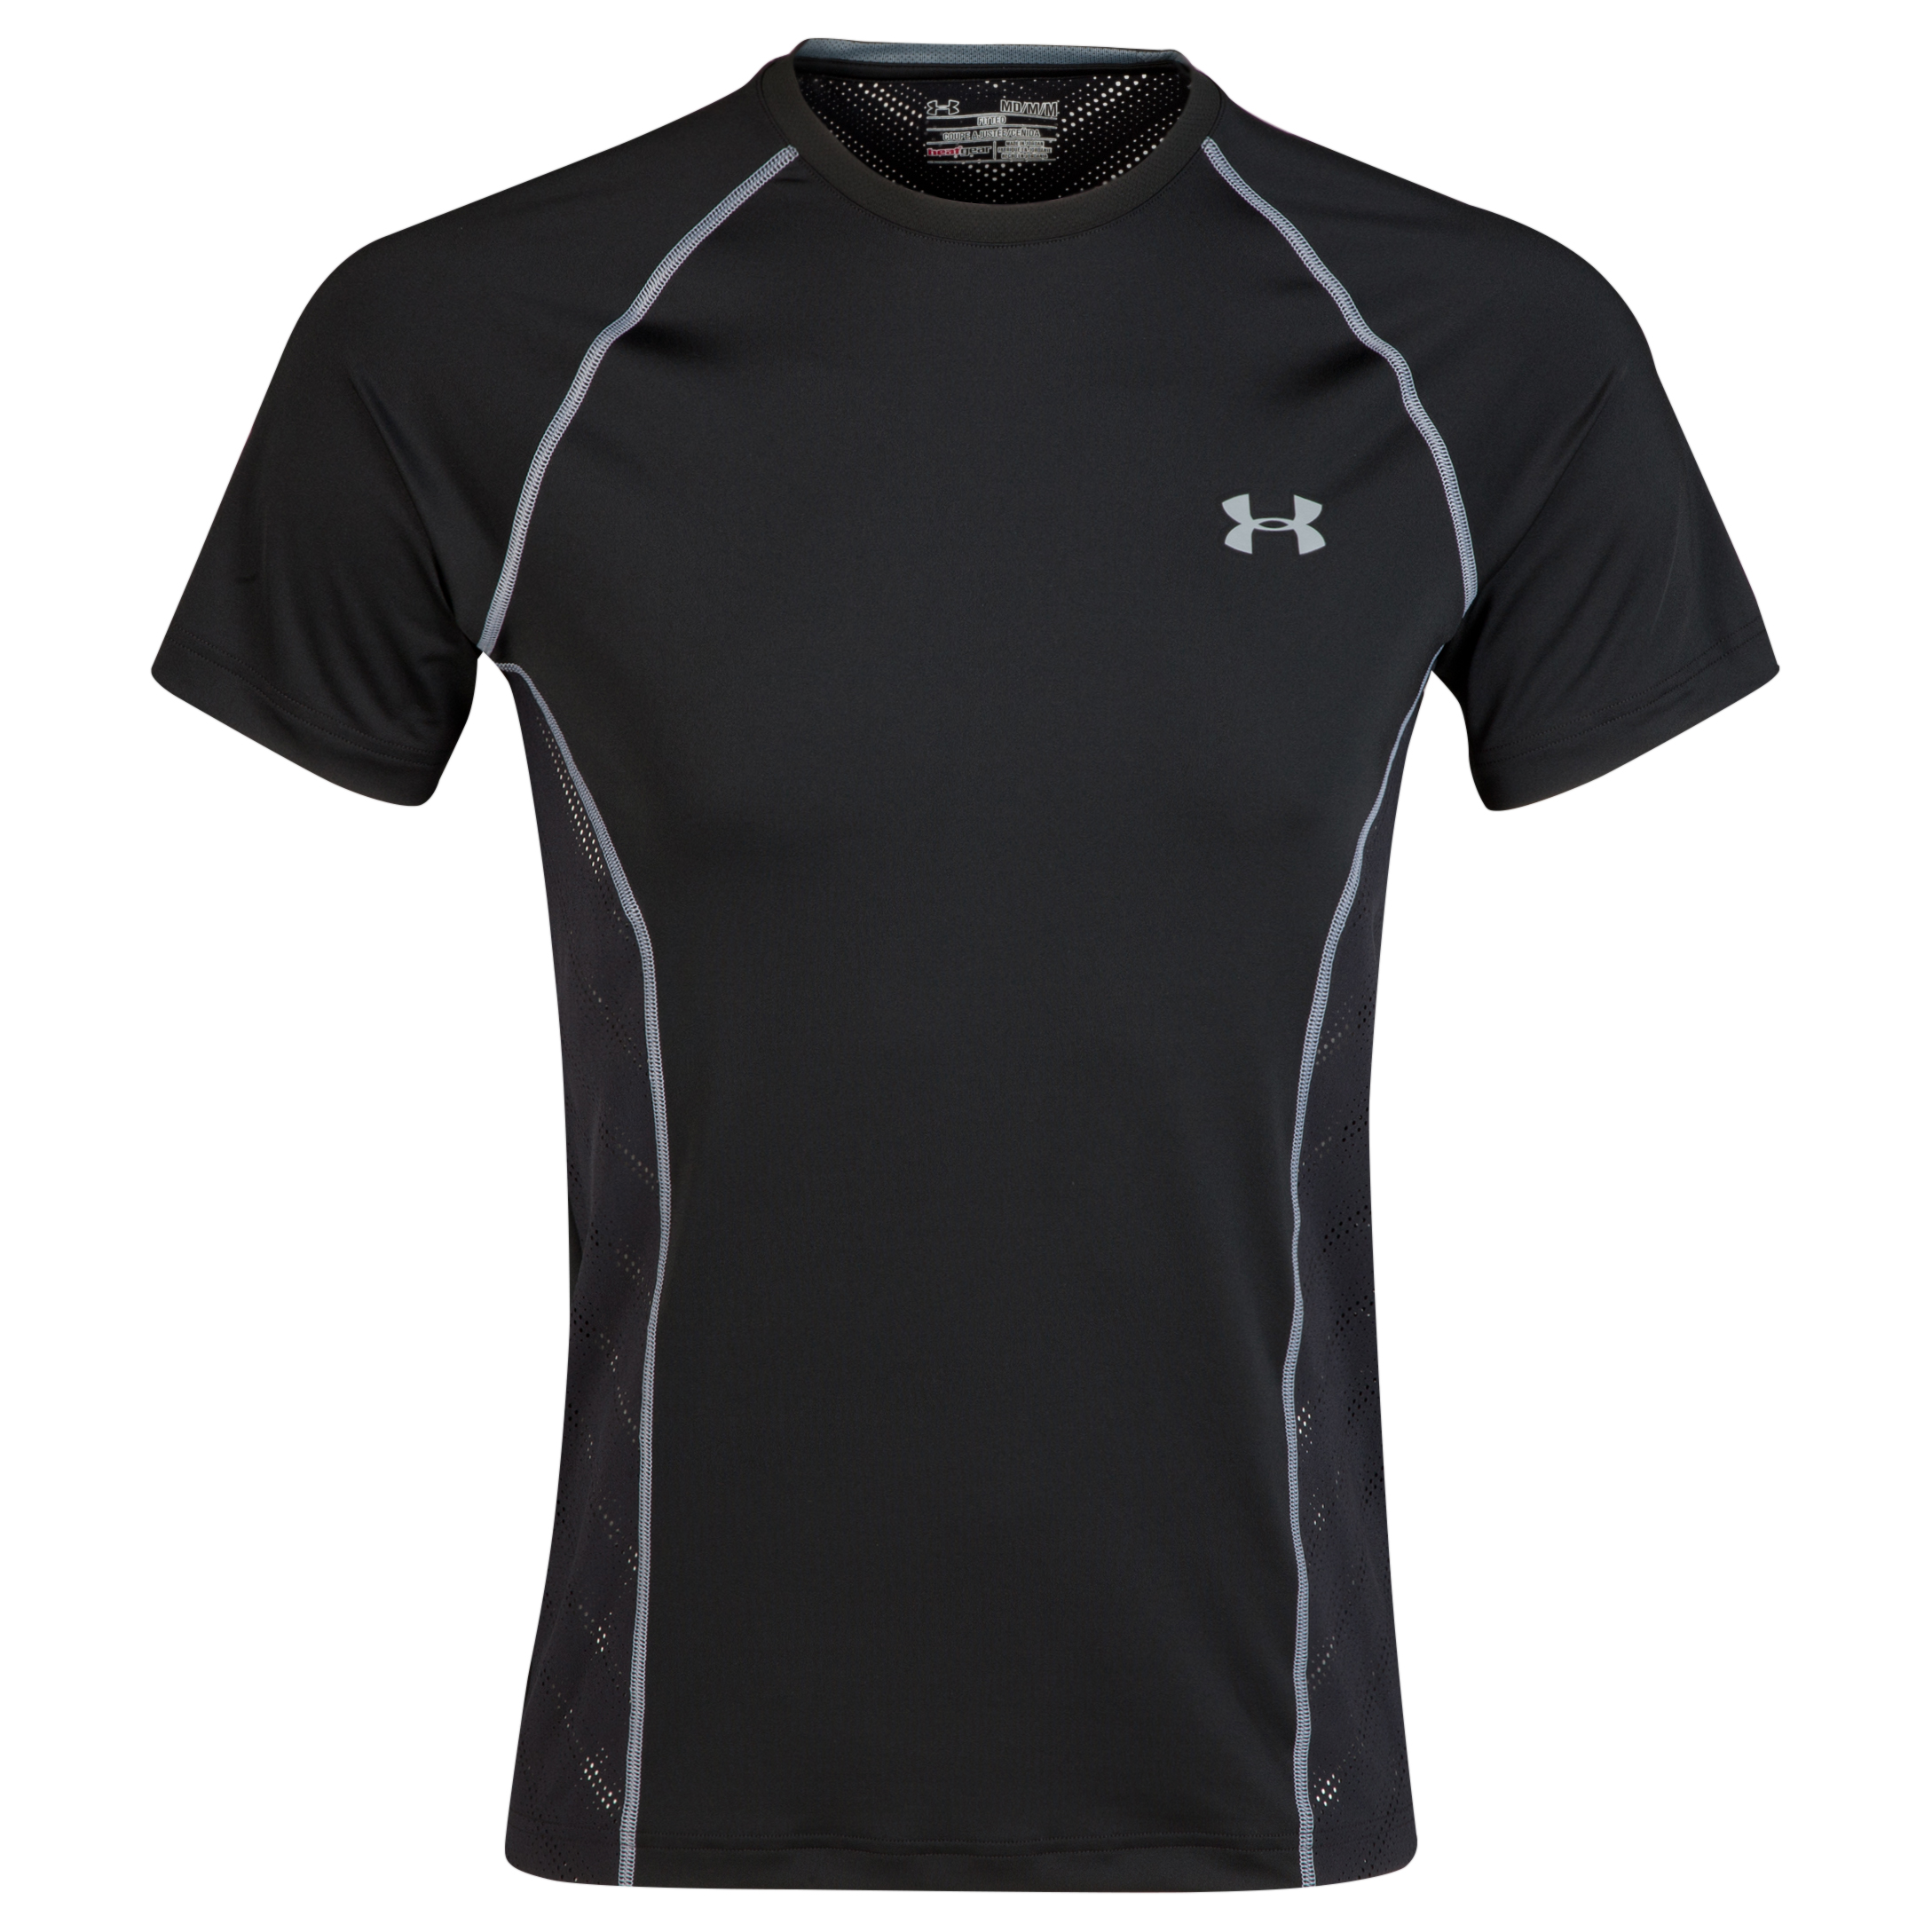 Under Armour Heatgear Sonic ArmourVent T-Shirt Black